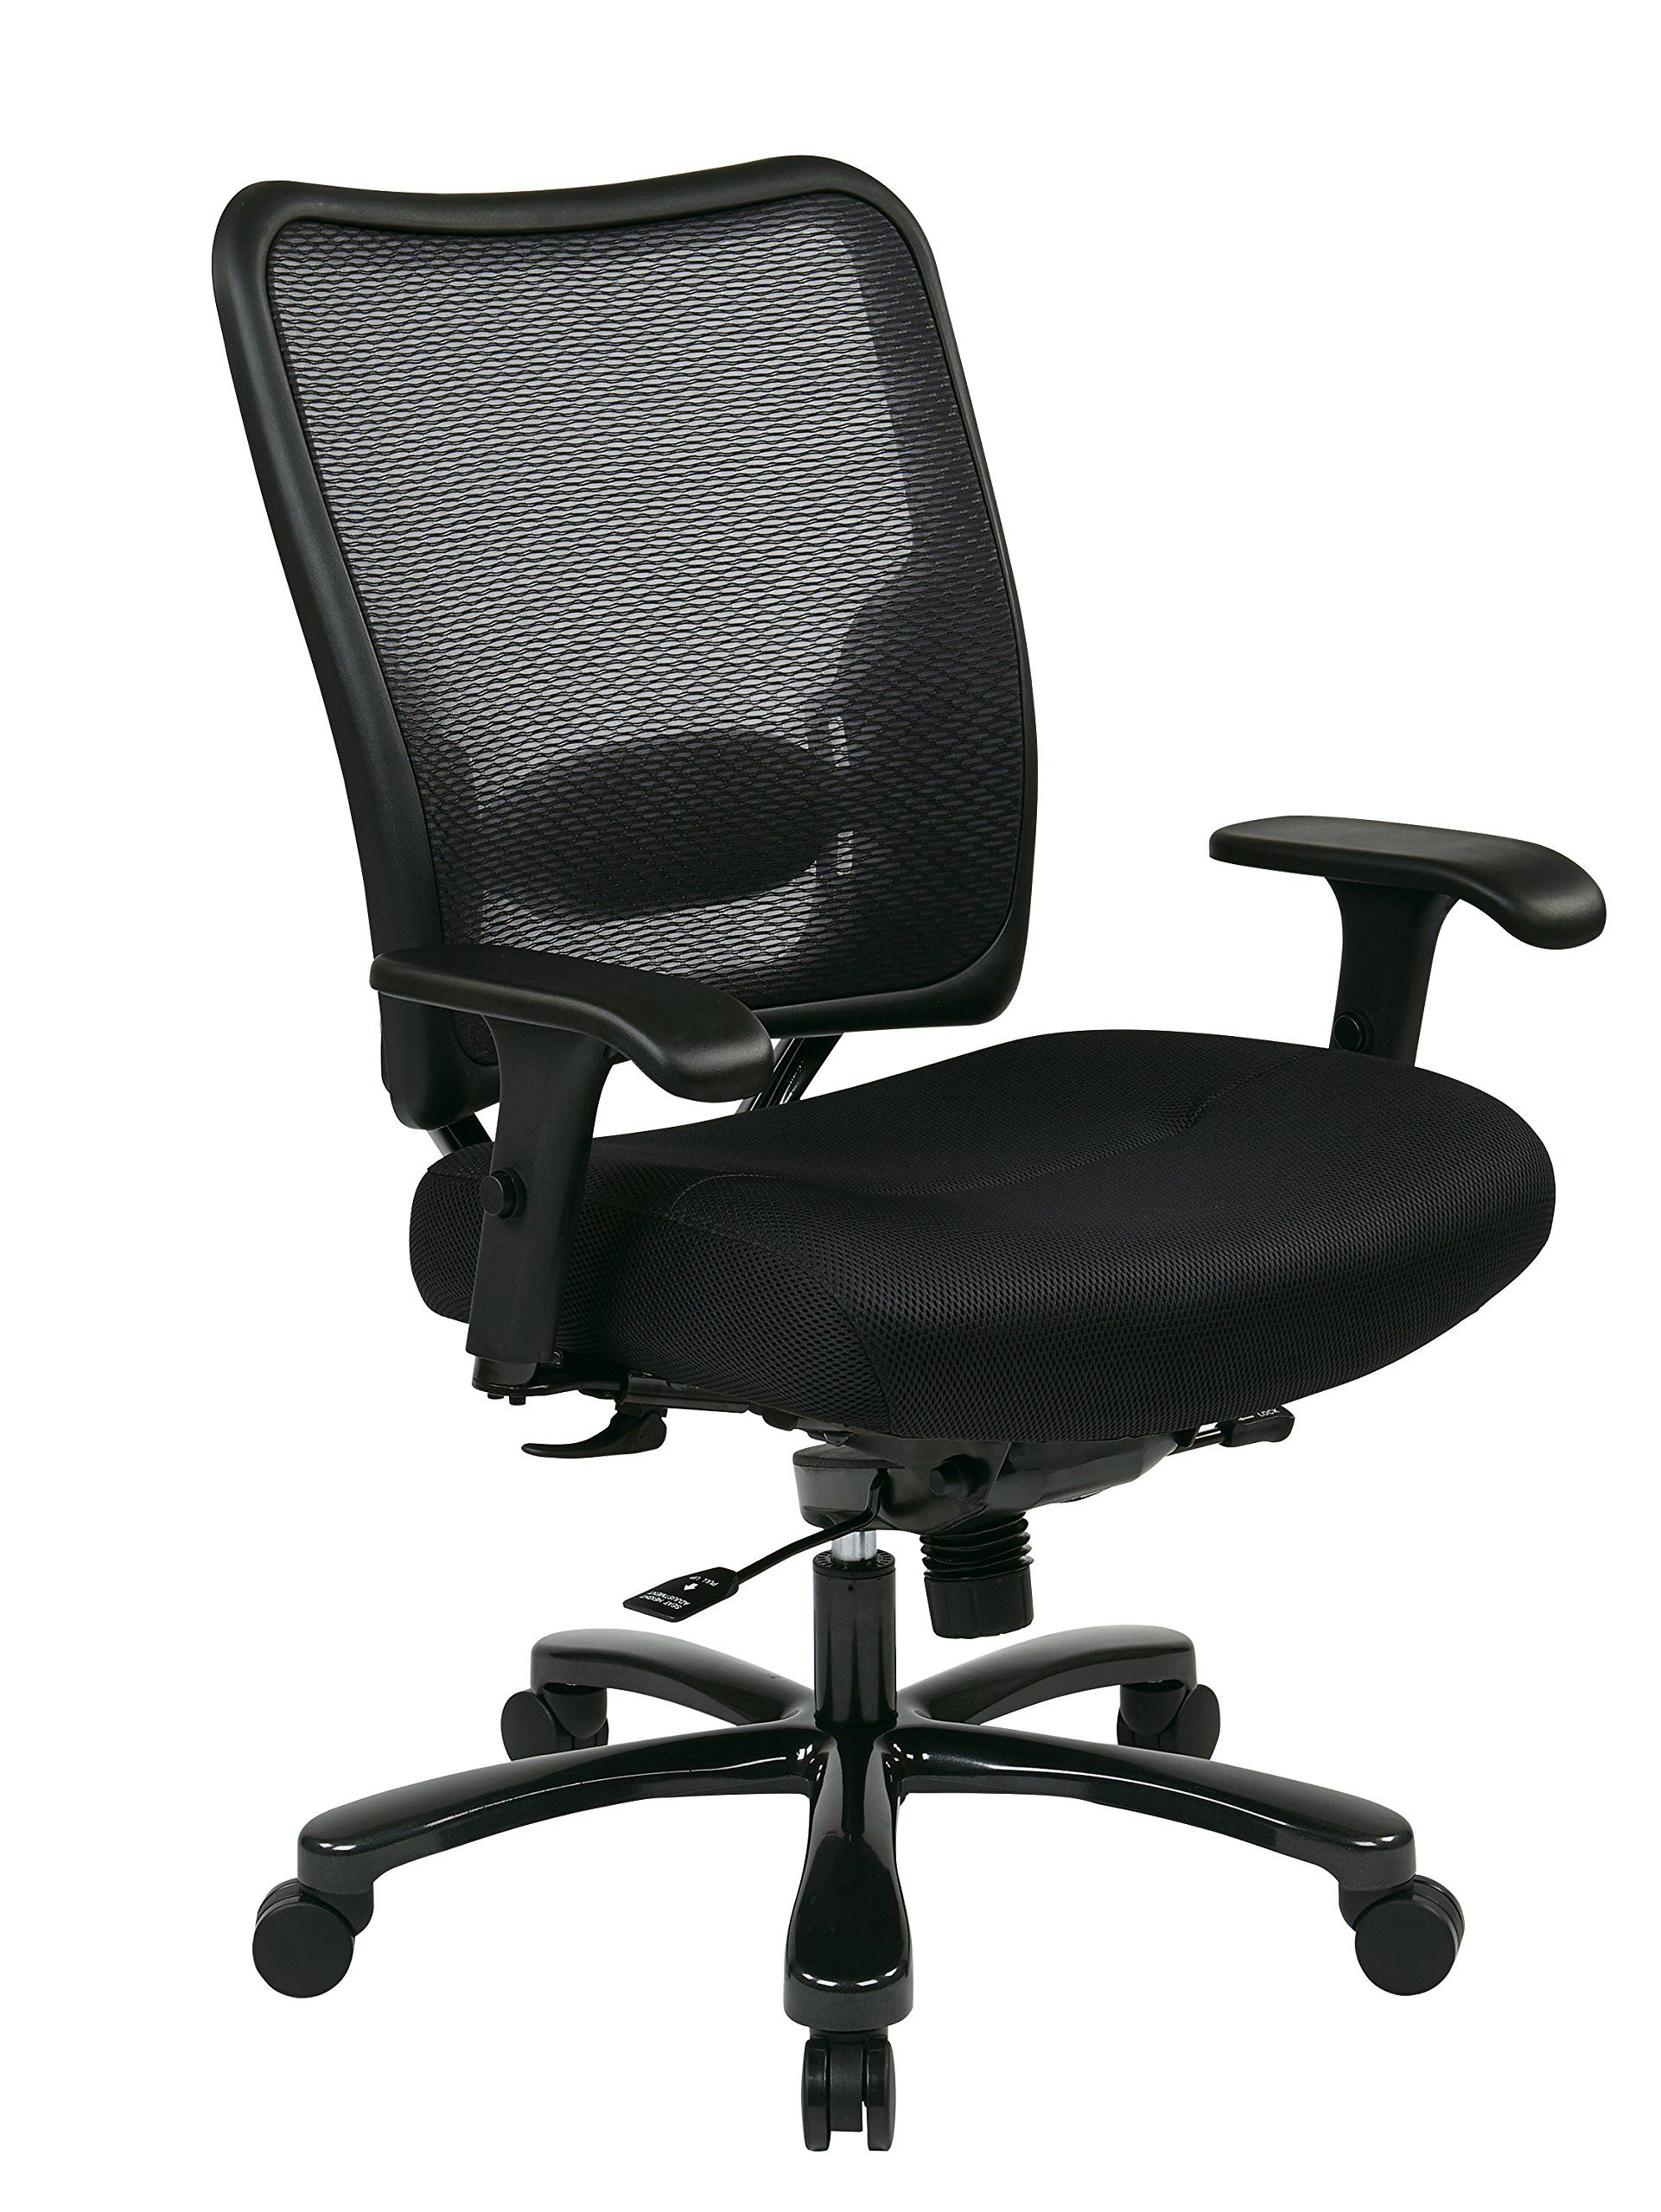 SPACE Seating Big and Tall AirGrid Back and Padded Mesh